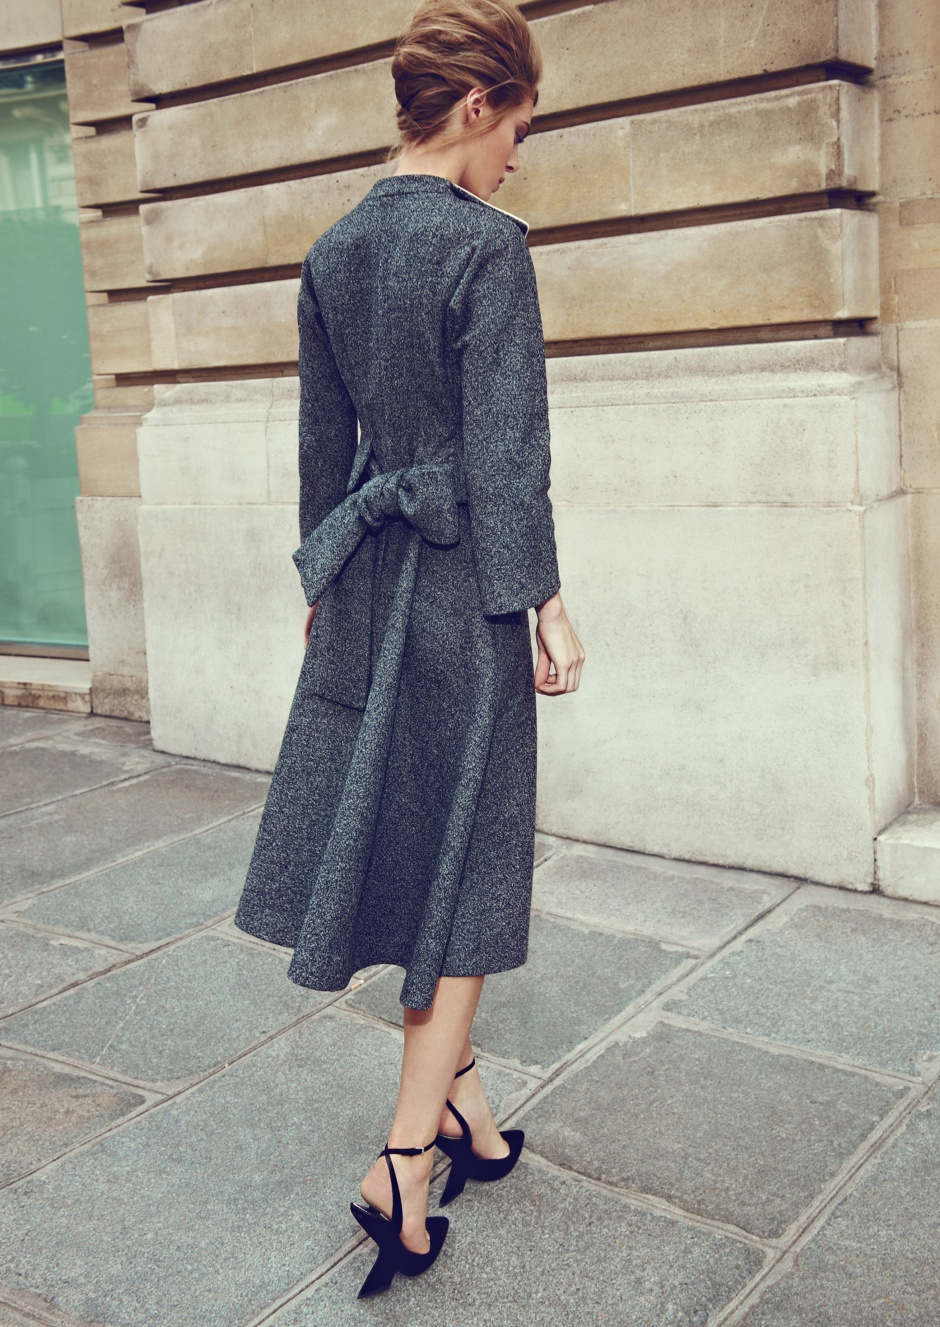 Coat and shoes by DIOR